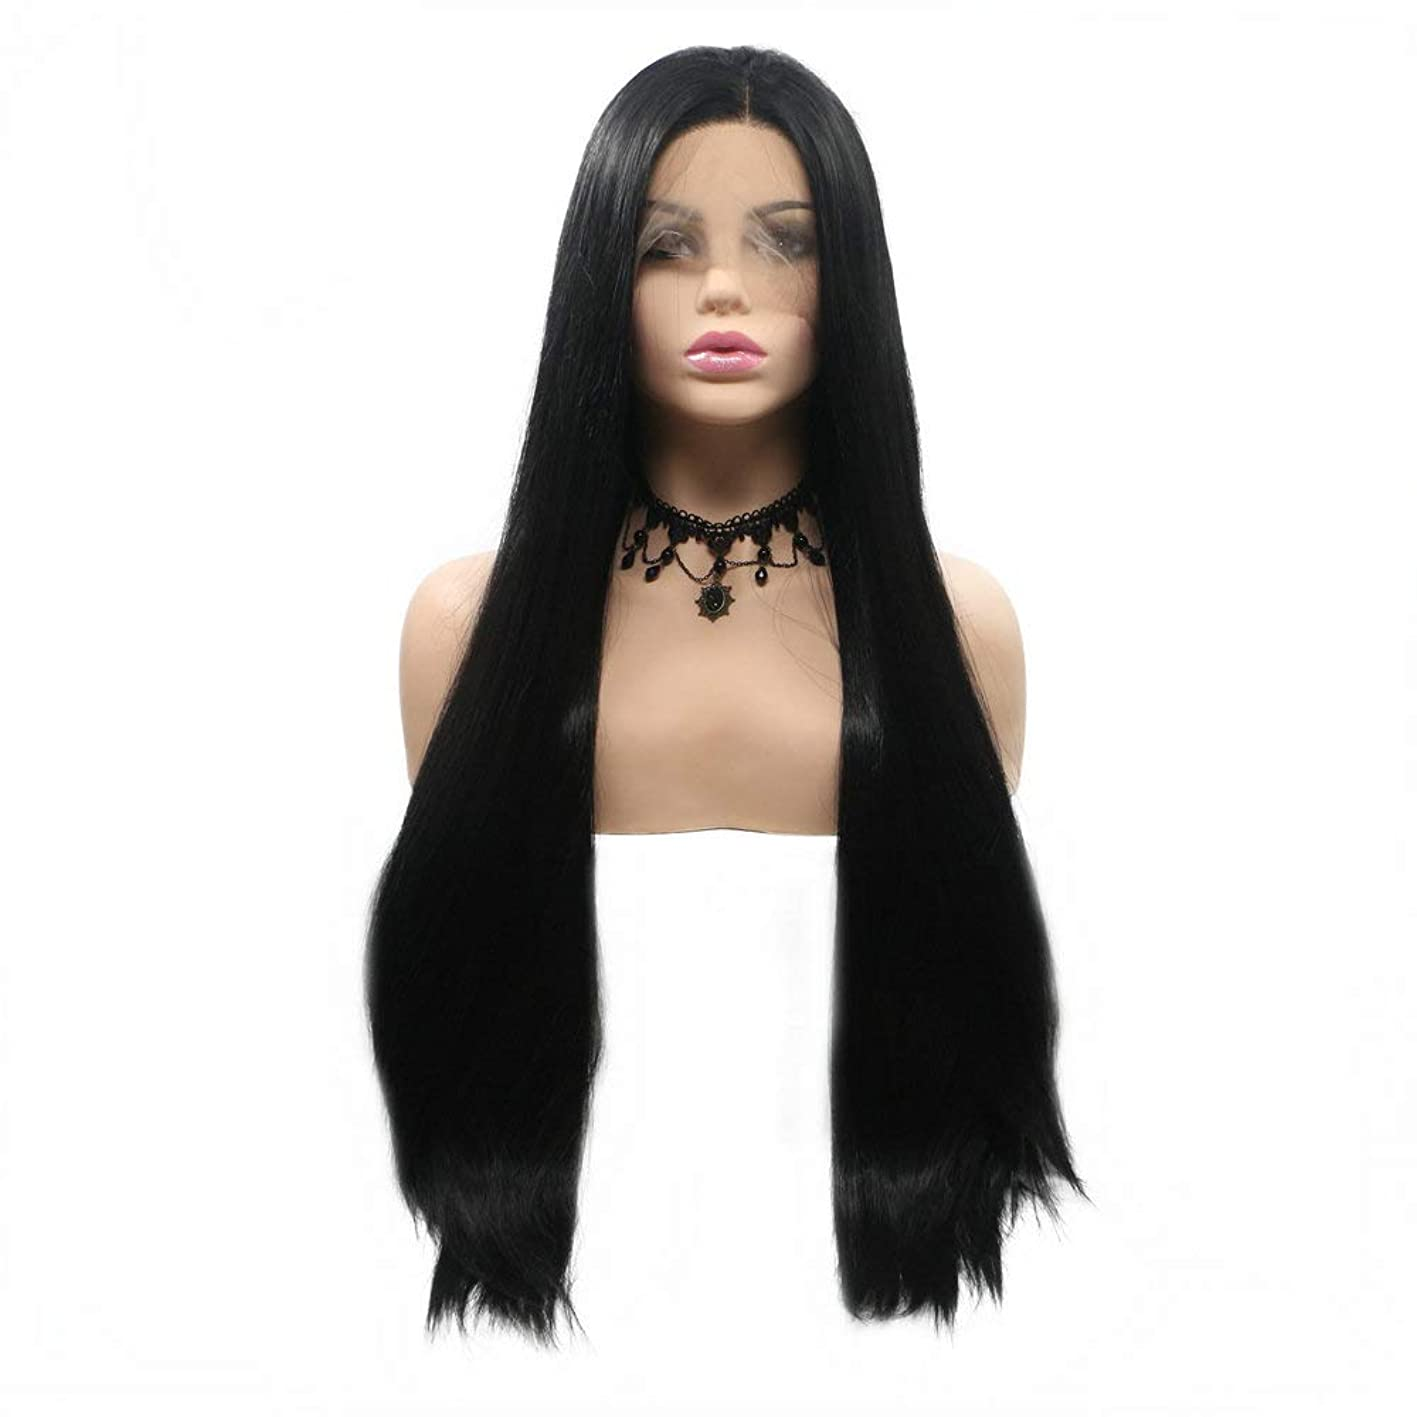 Natural Black Wig Straight Long Hair, 1B# Black Synthetic Lace Front Wigs for Women Holidays Festival Makeup Travel,Glueless Cap Drag Queen Wigs Flawless 28 twtkqtlecny692